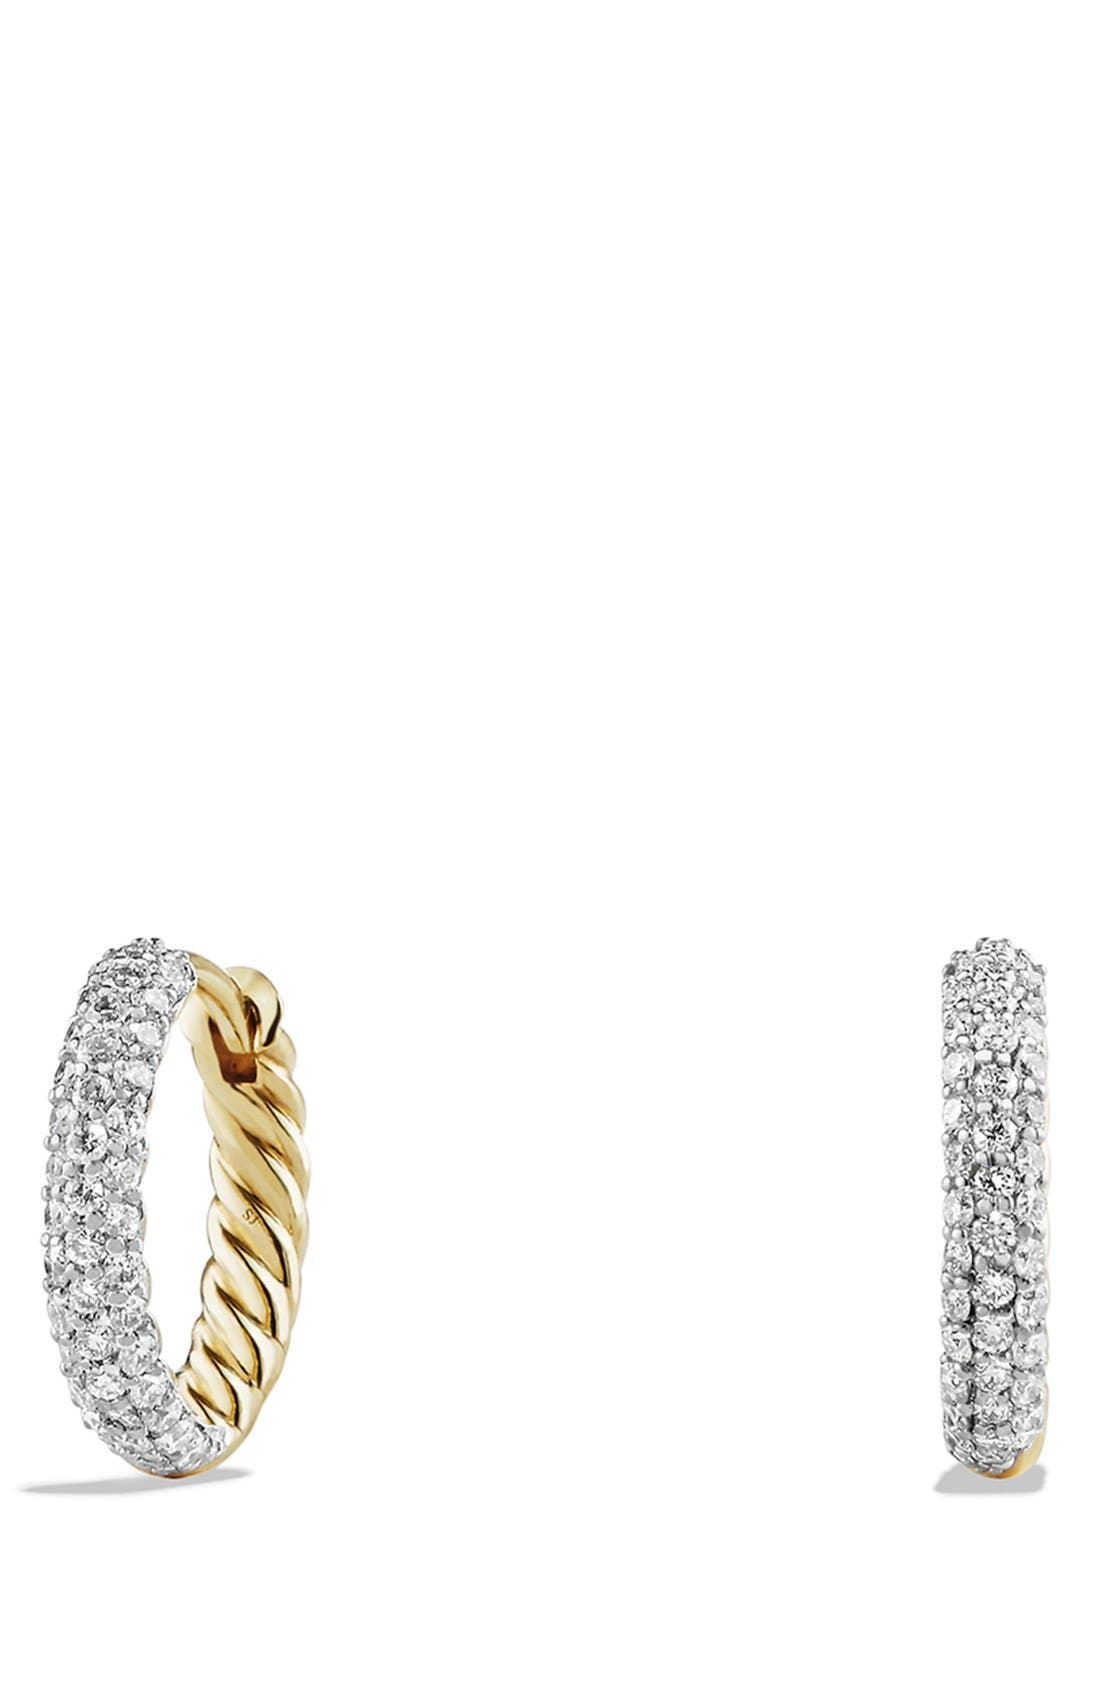 'Petite Pavé' Earrings with Diamonds in 18K Gold,                         Main,                         color, GOLD